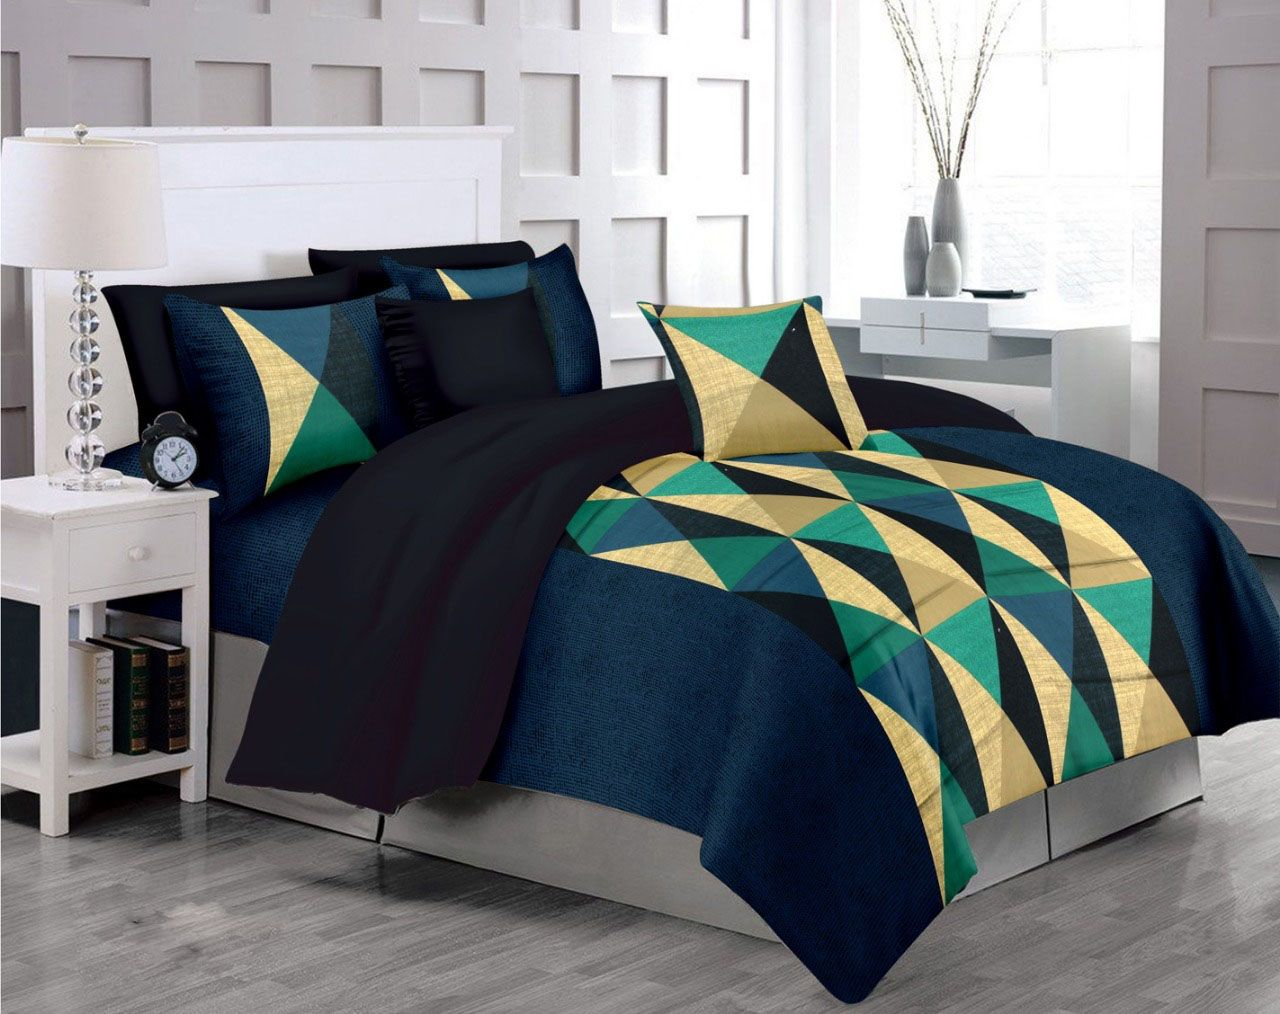 Best Quality Bedding Wholesale Distributors Manufacturers In